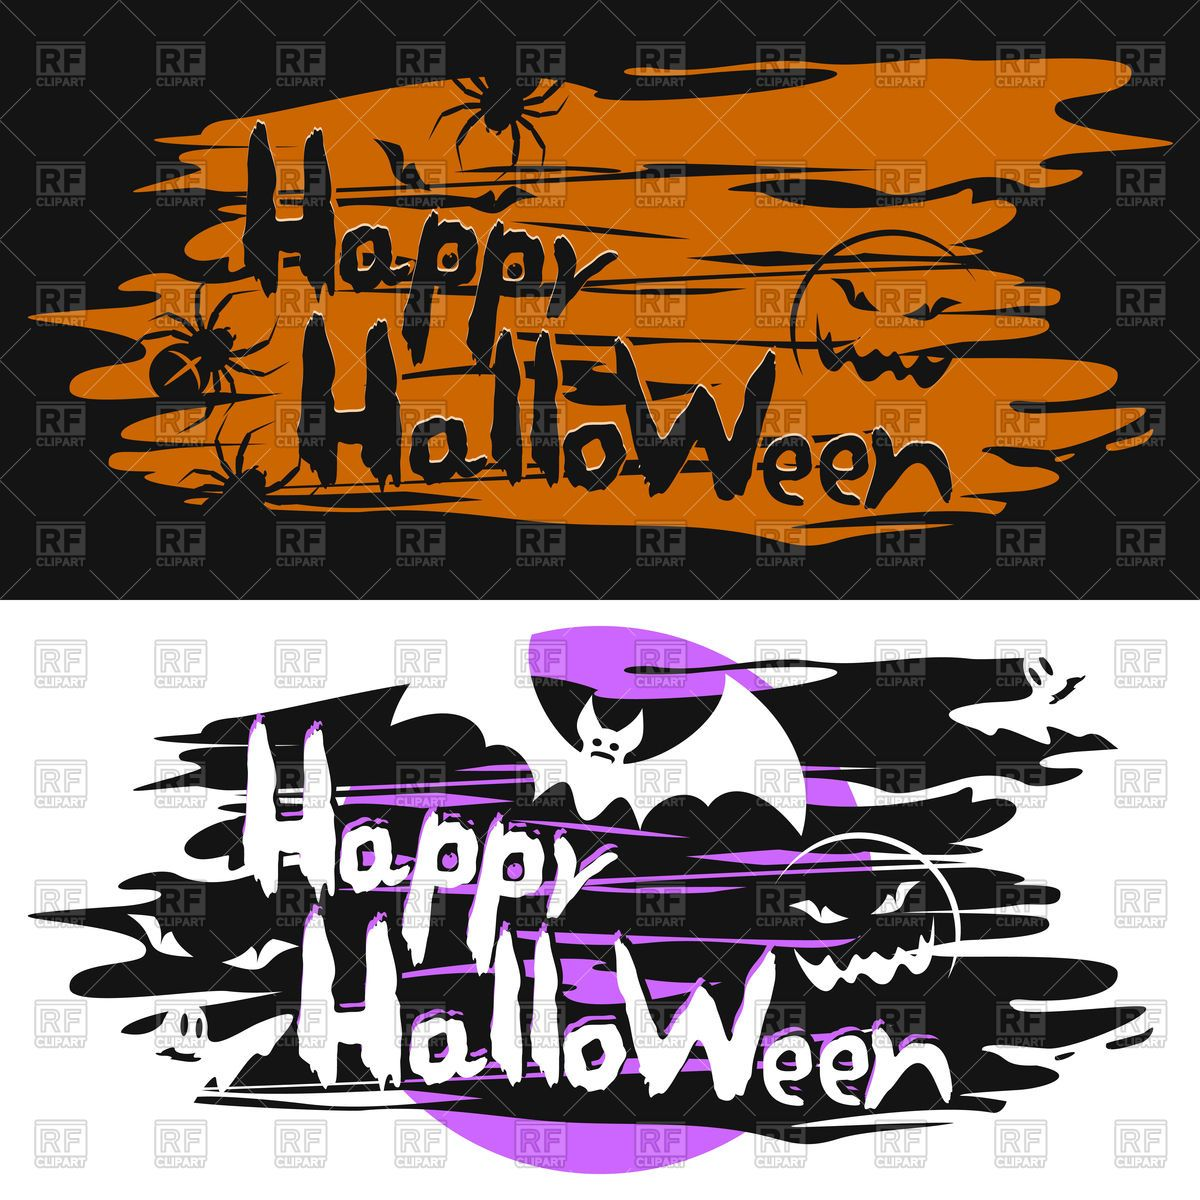 Attirant Cards For The Halloween Vector Image U2013 RFclipart